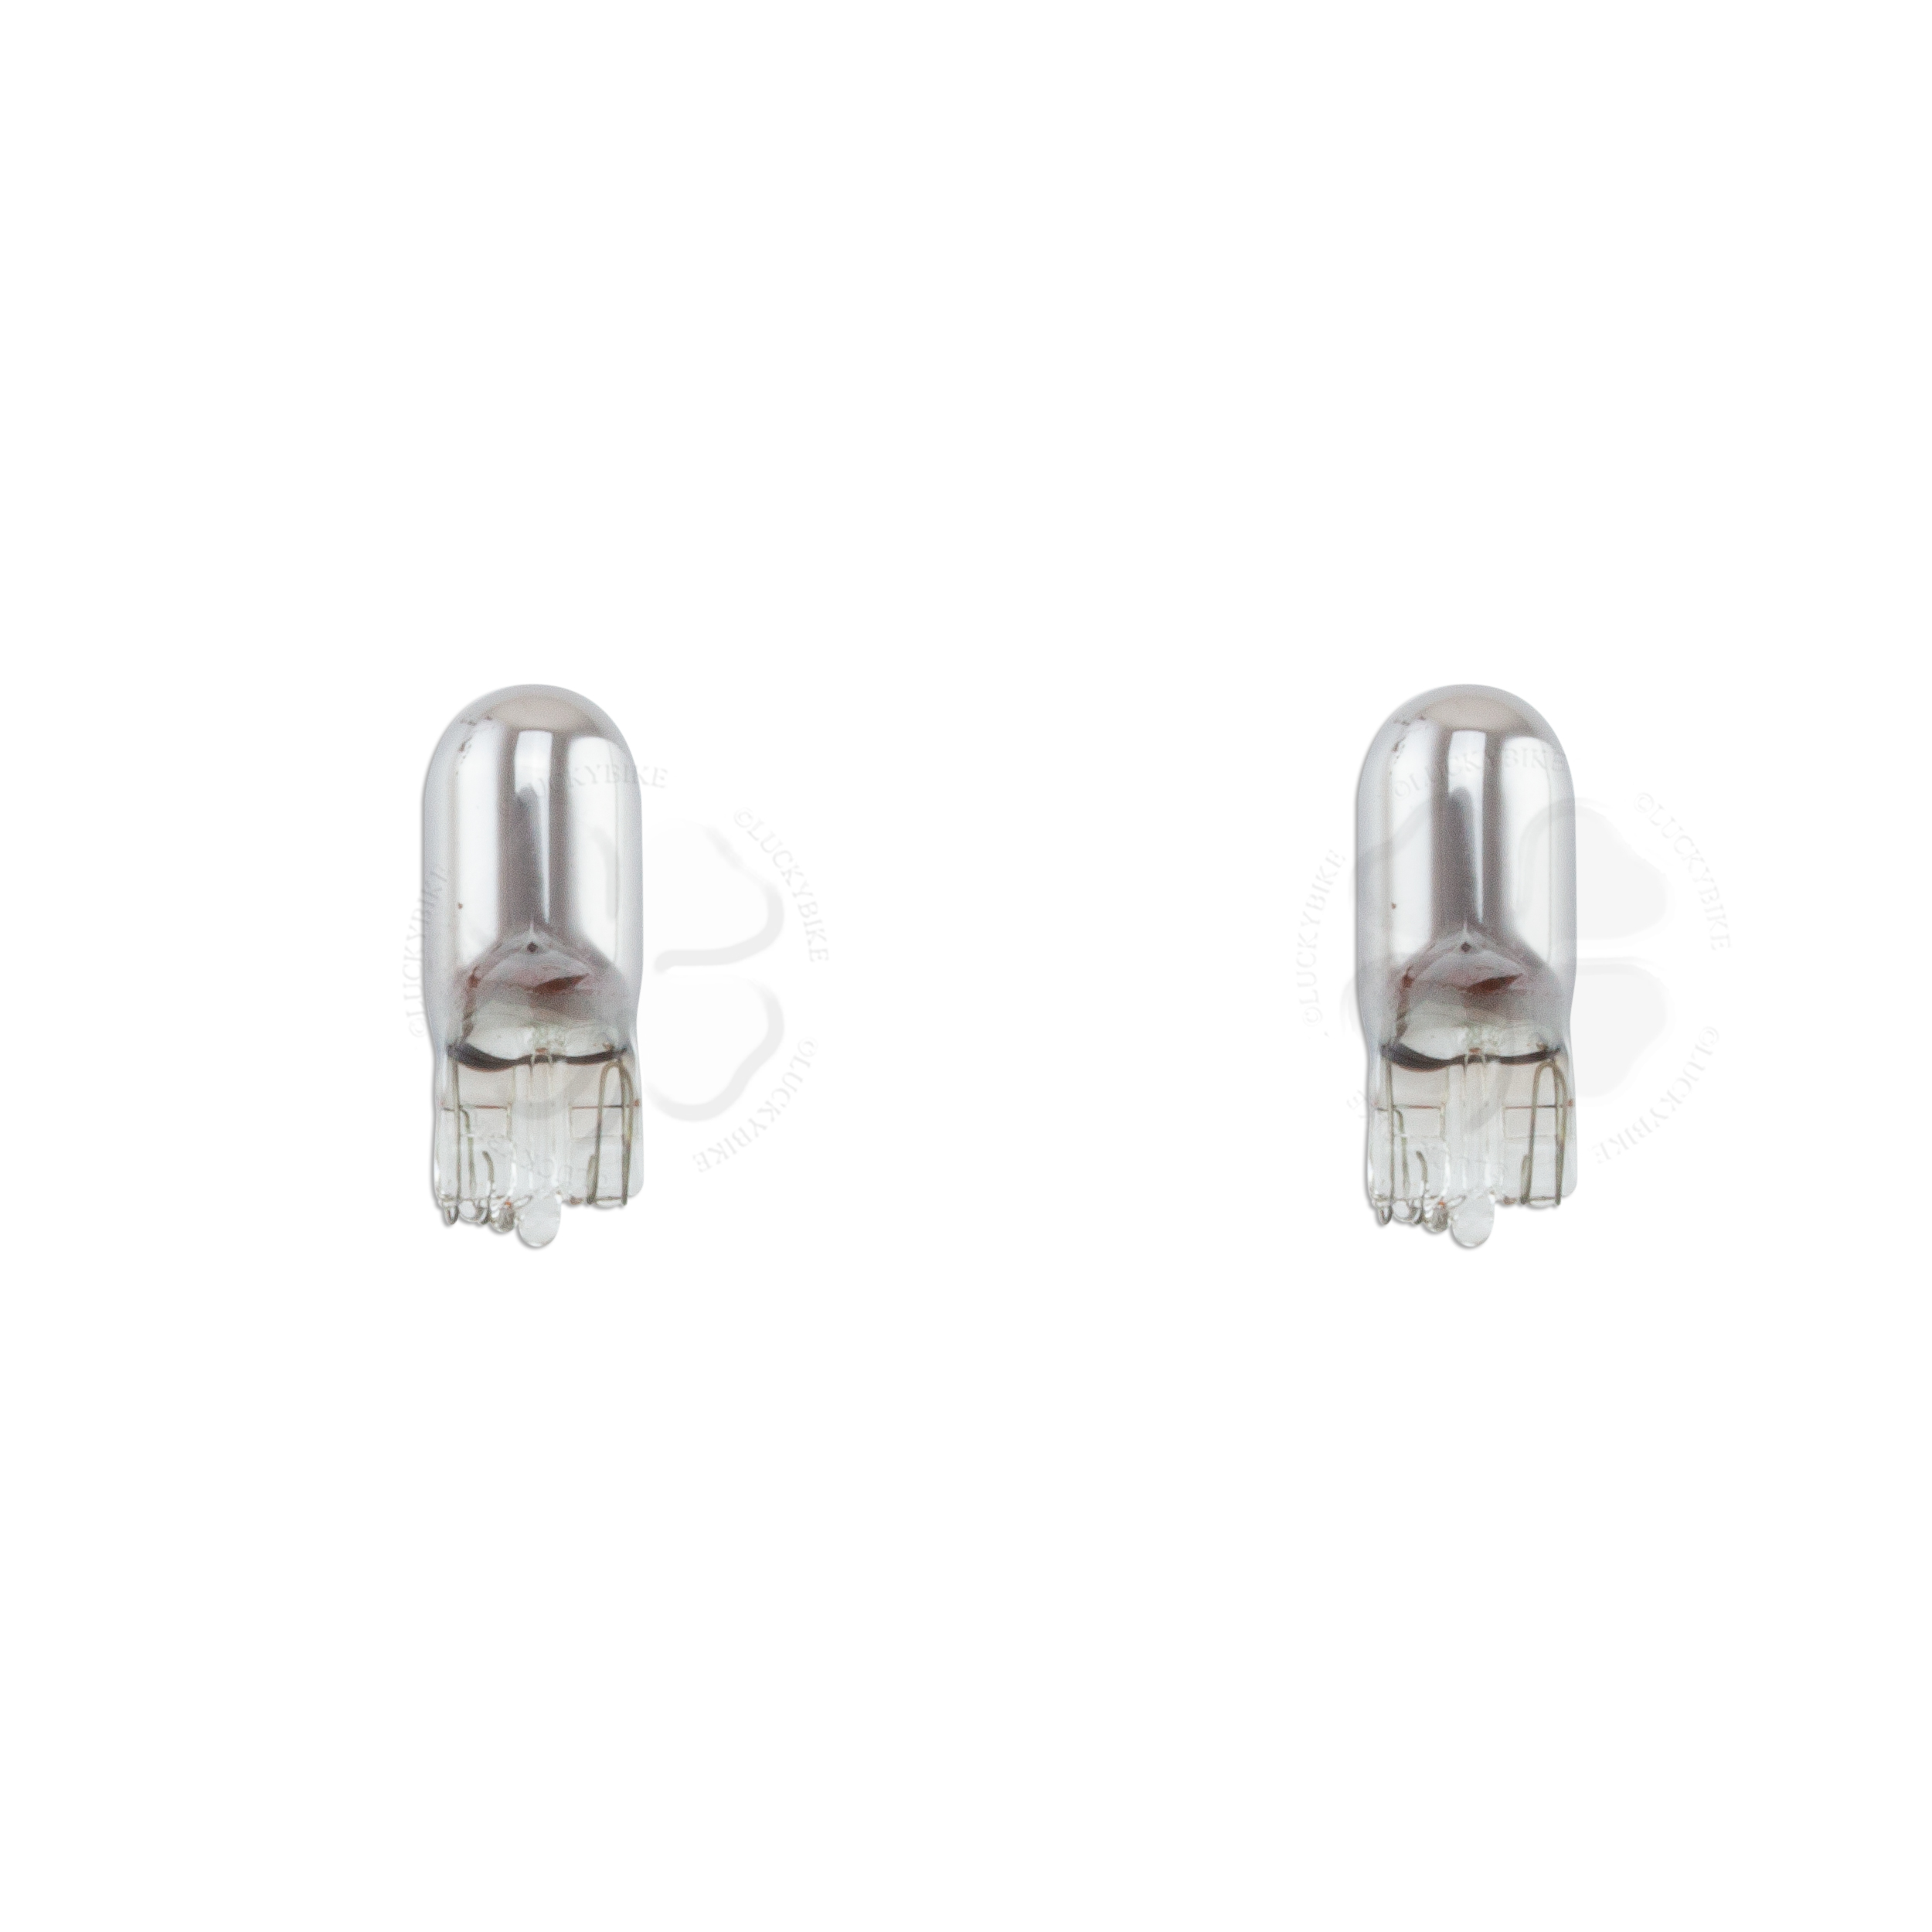 Bulb - T10 194 - 5w Small Wedge - Chrome x1 (x2)